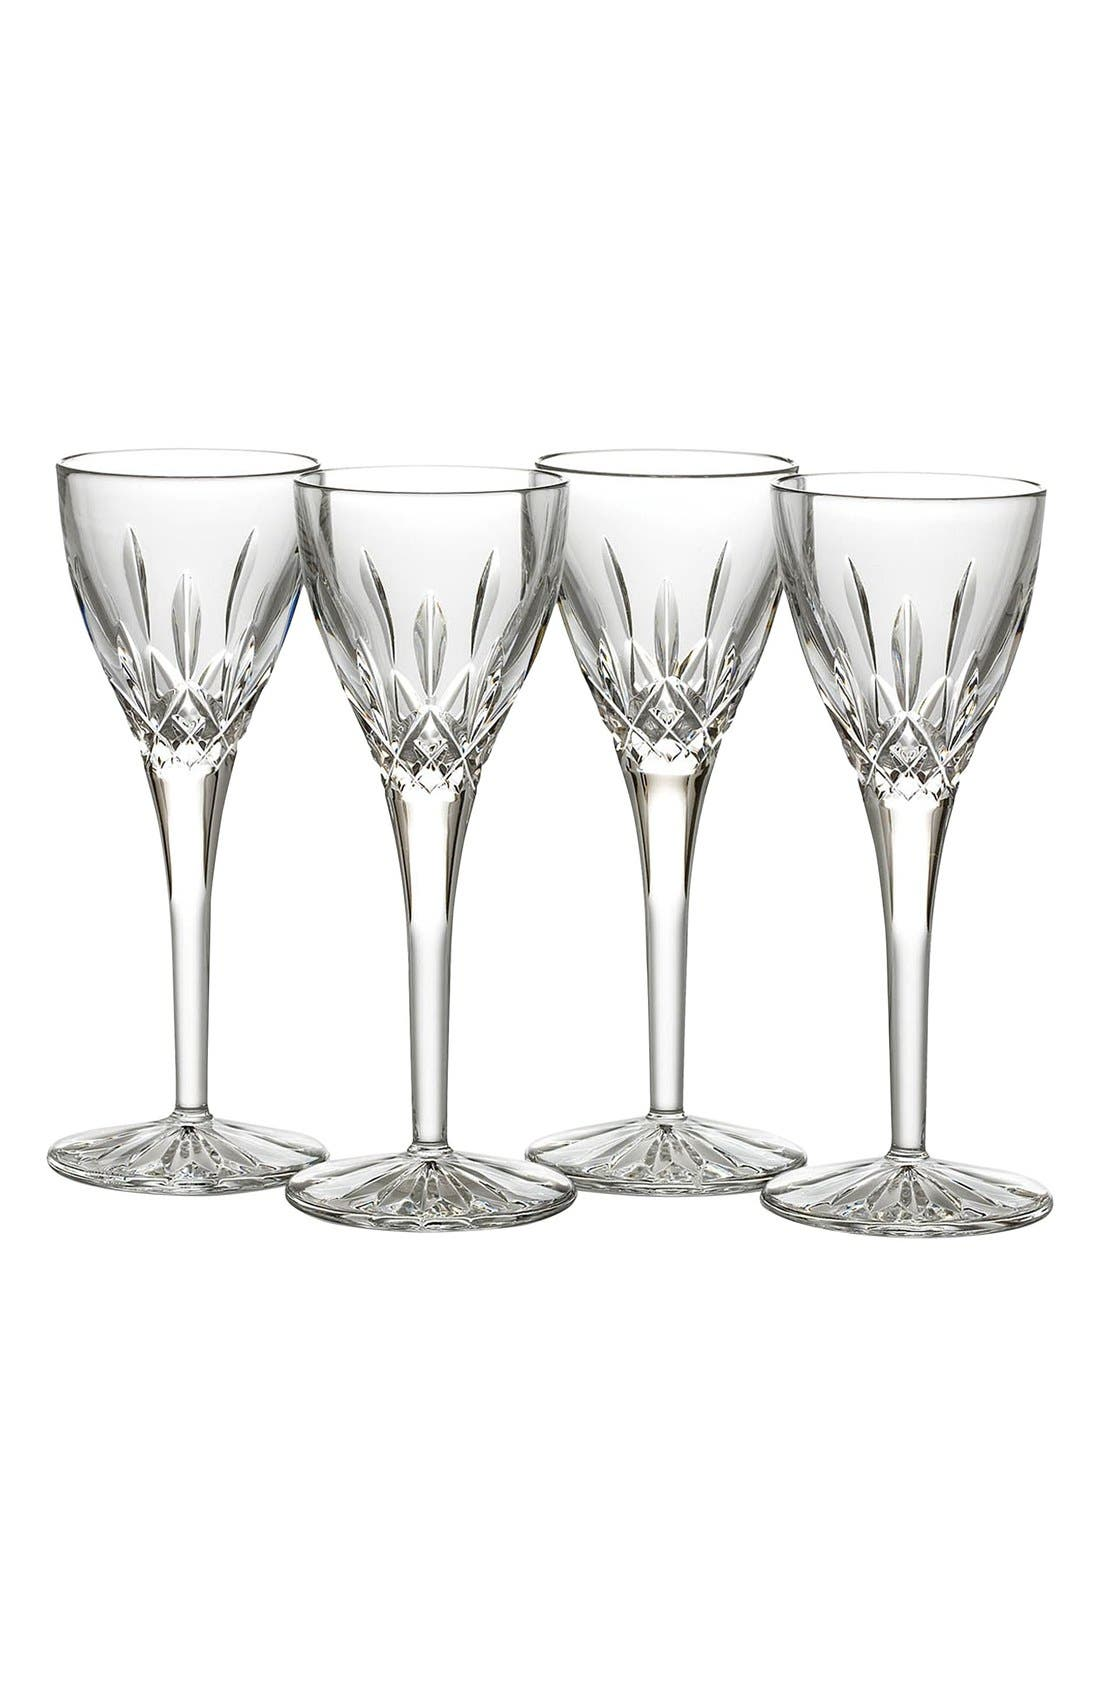 Main Image - Waterford 'Lismore' Lead Crystal Cordial Glasses (Set of 4)